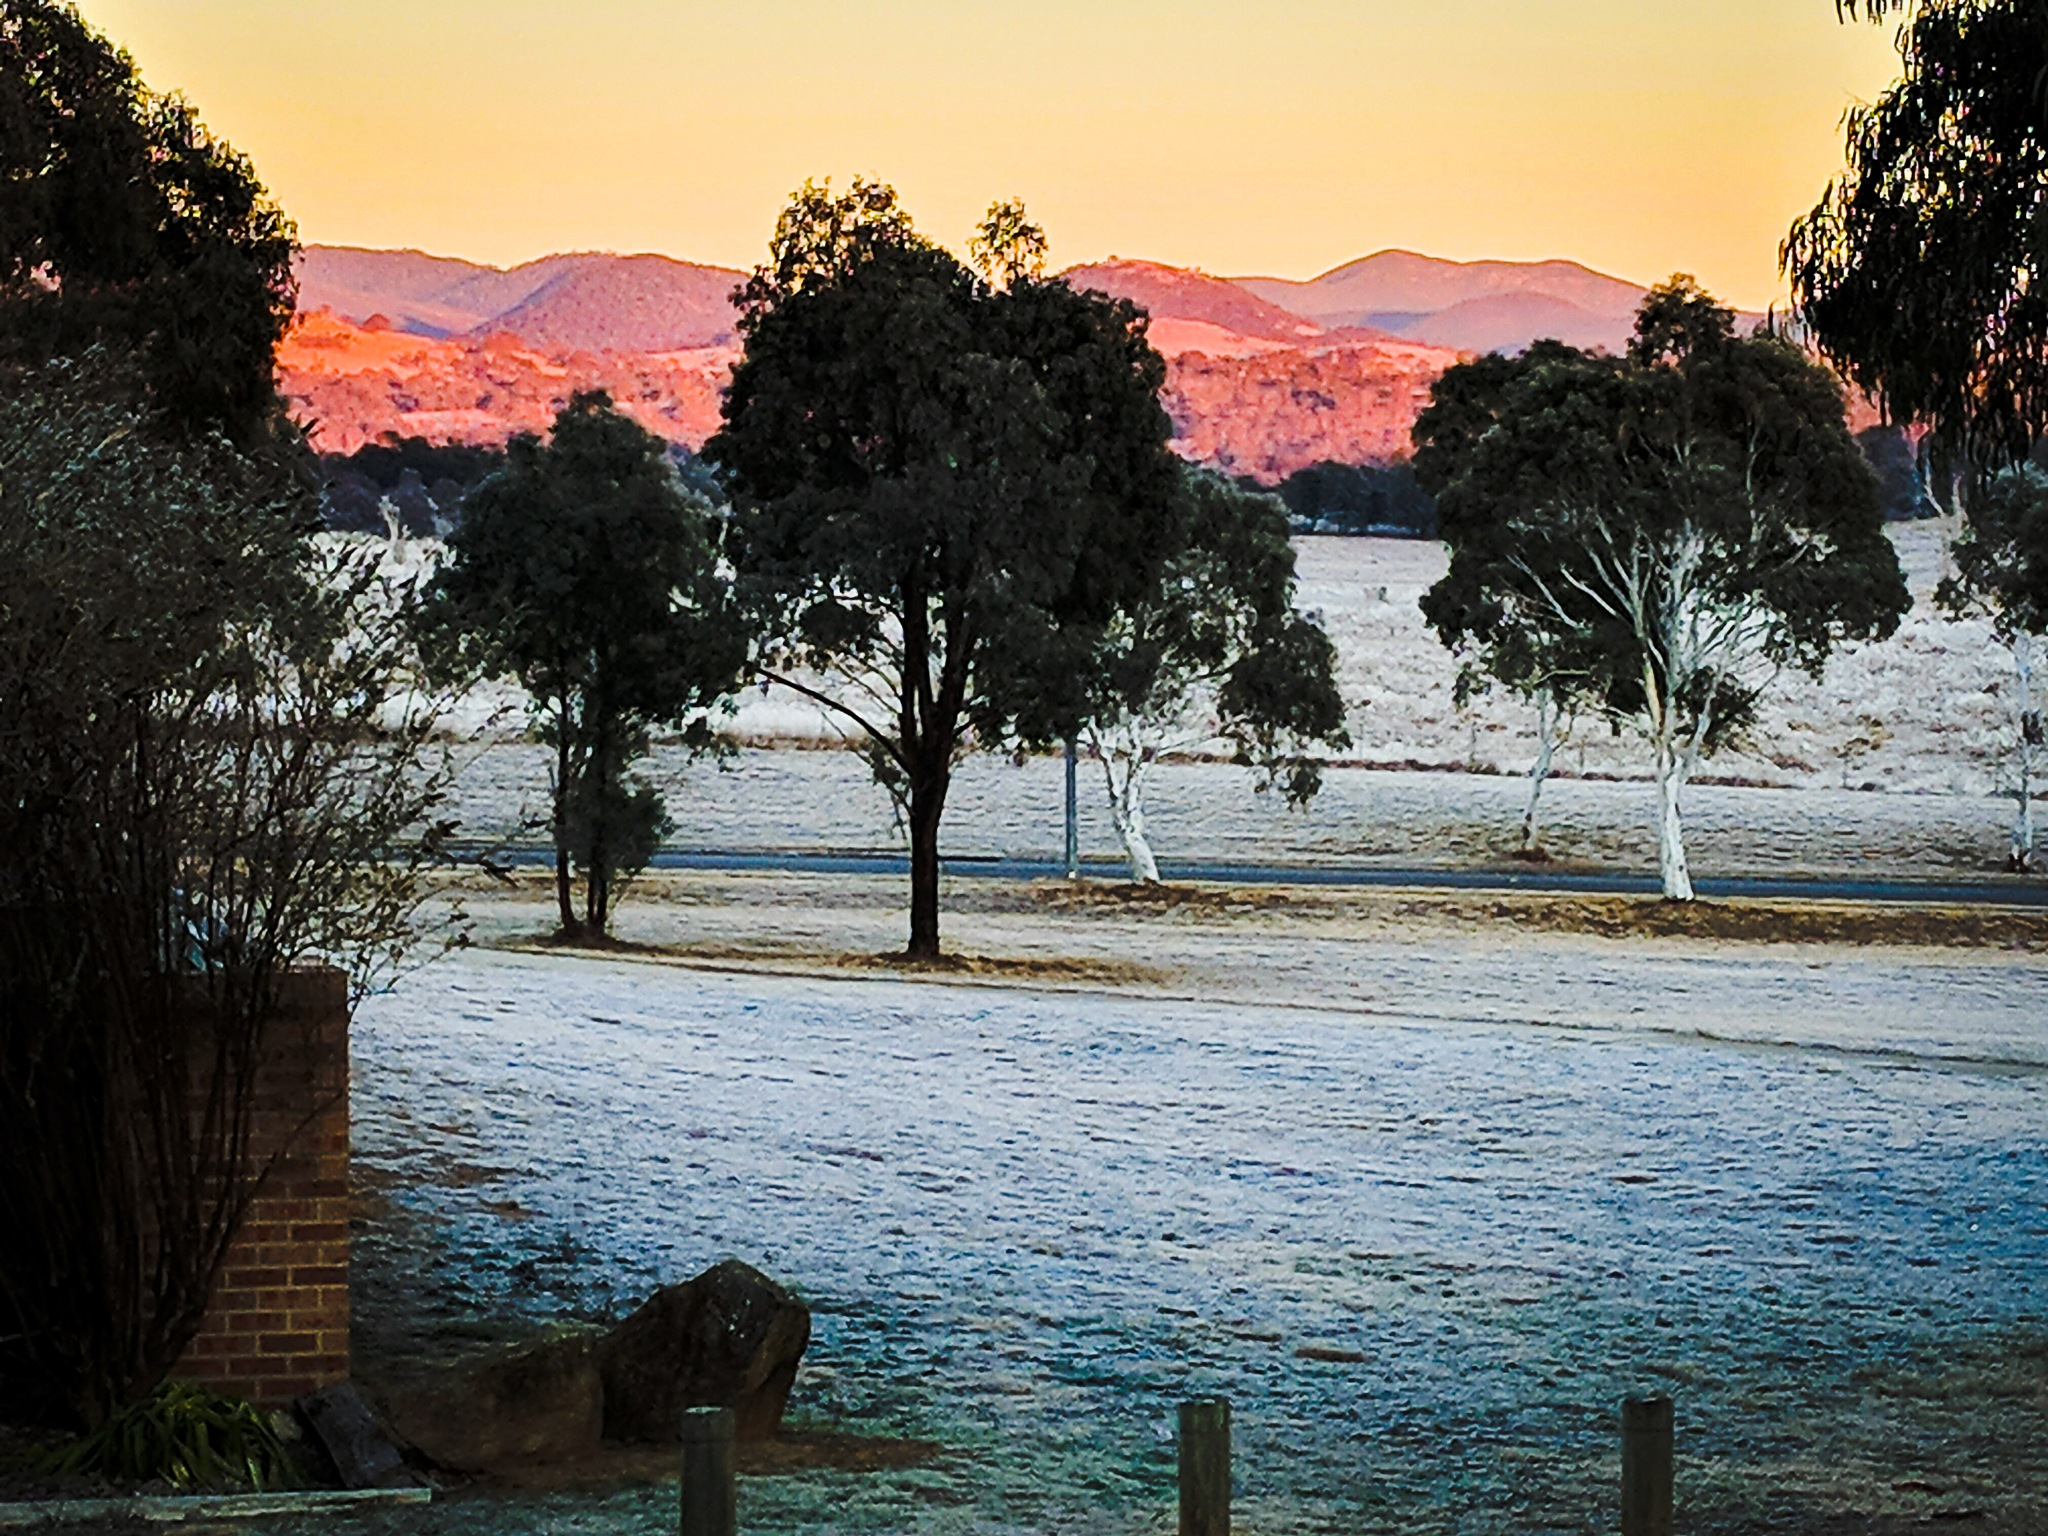 A cold and frosty morning by Jeanette Richmond